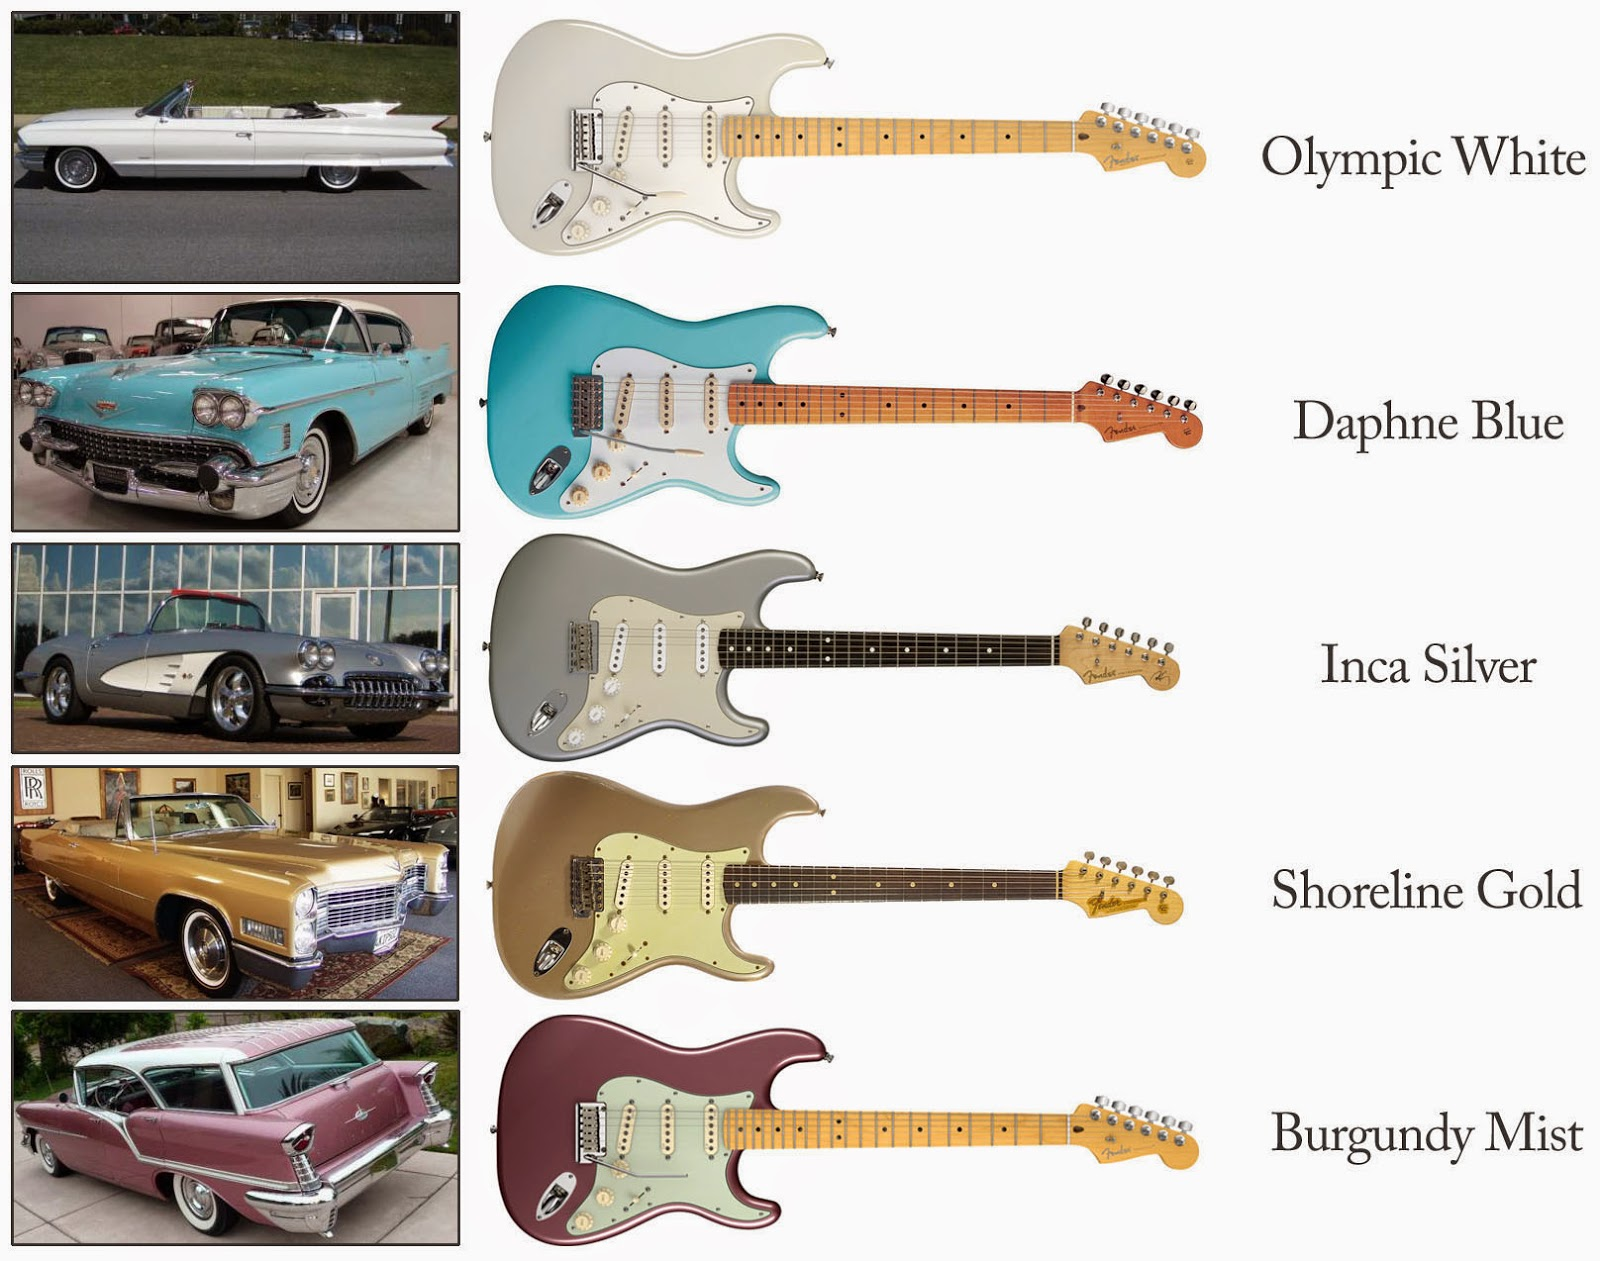 Fender forums view topic fender color chart and automobiles image nvjuhfo Images